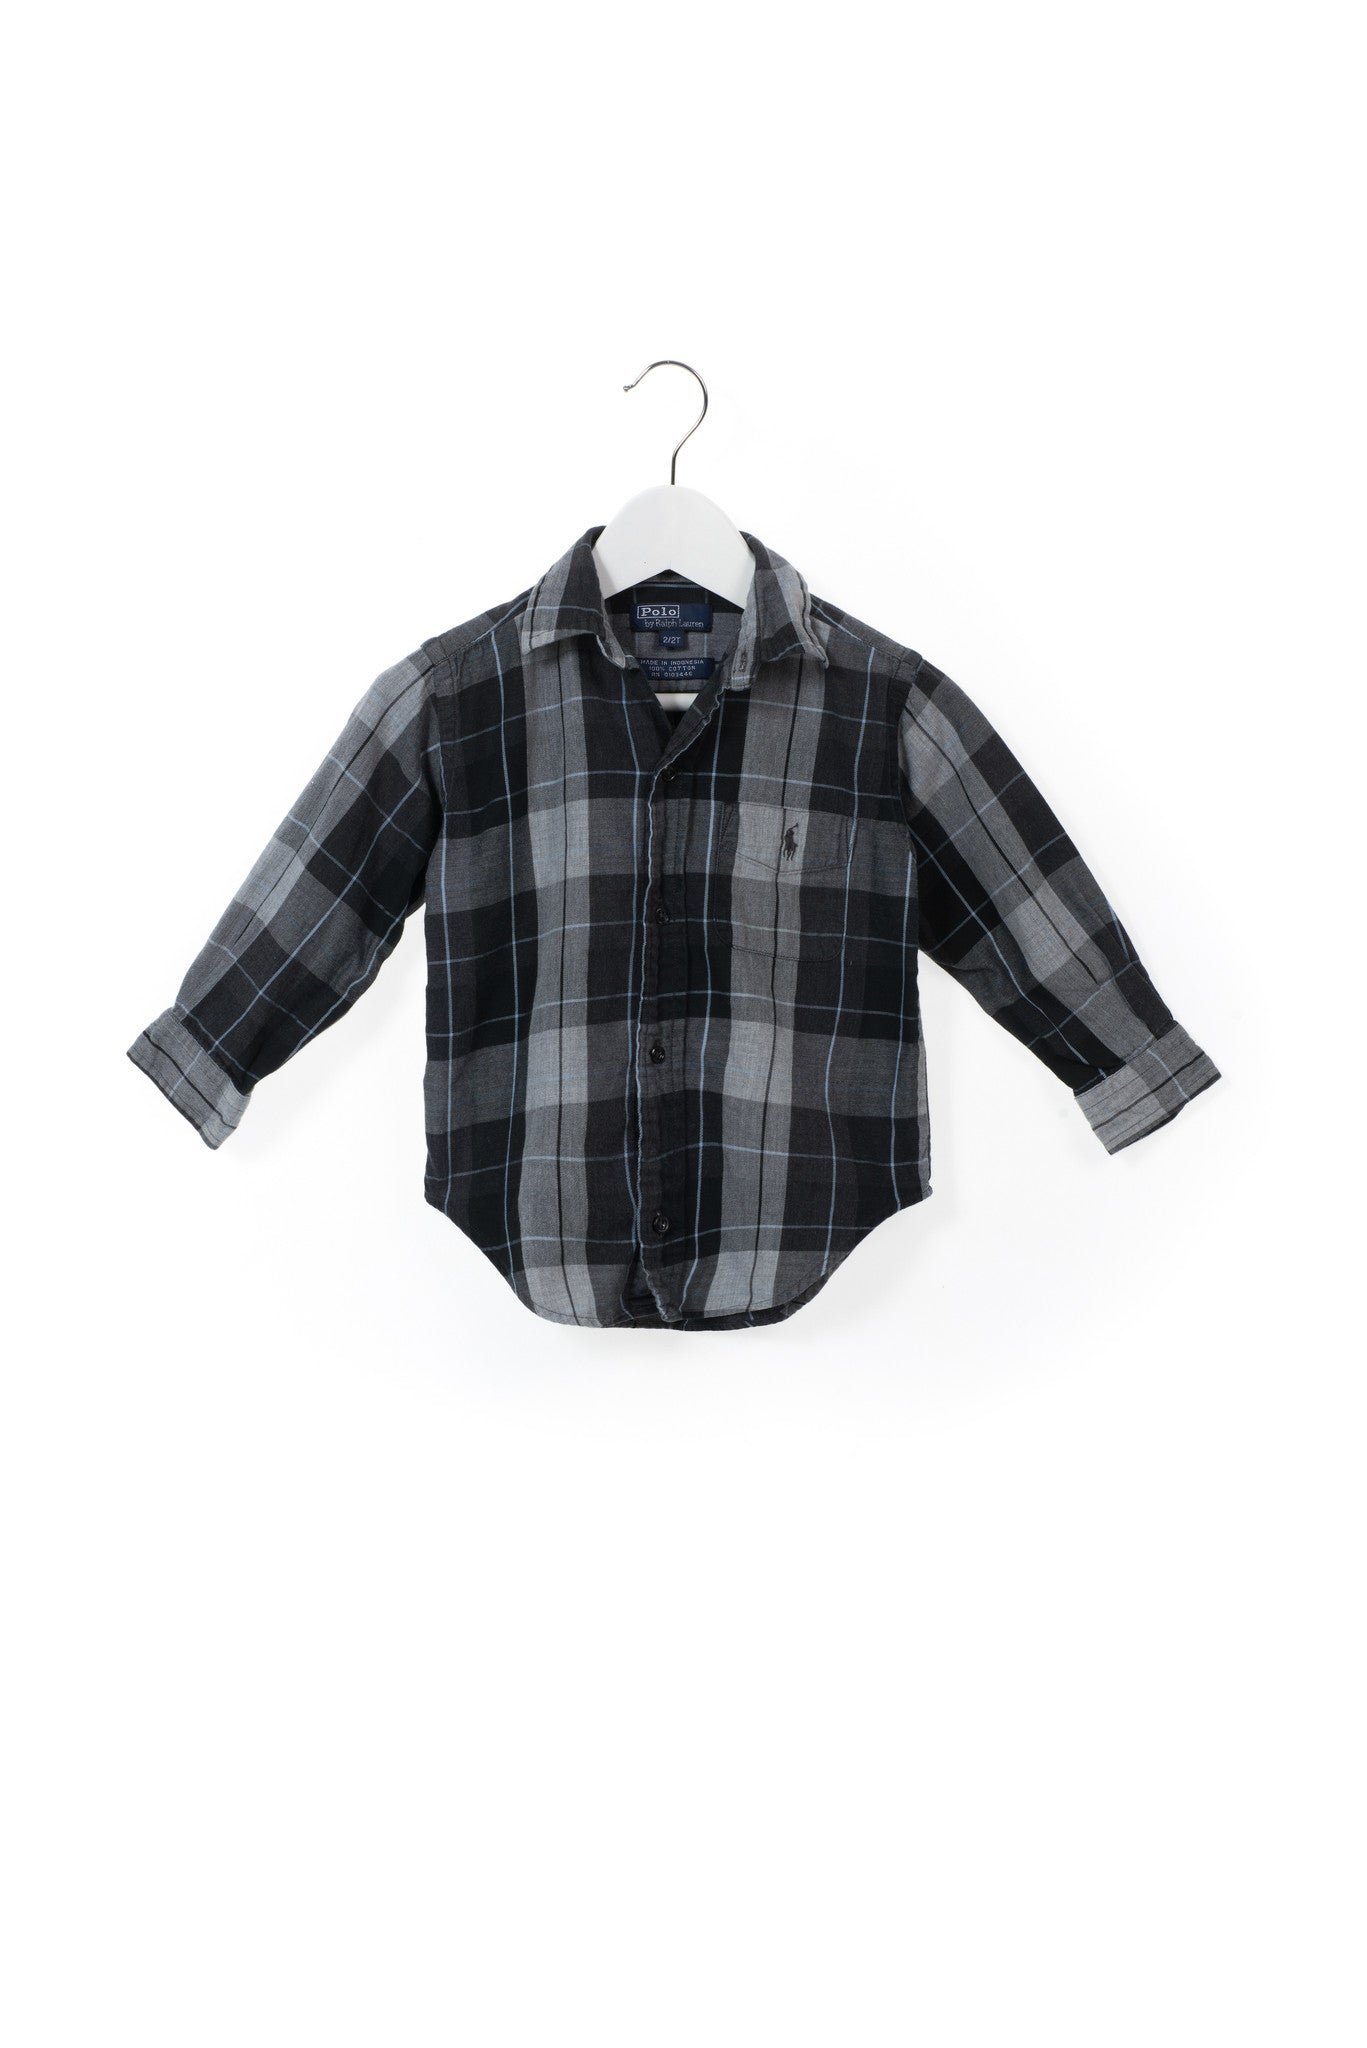 10001159 Polo Ralph Lauren Kids~Shirt 2T at Retykle